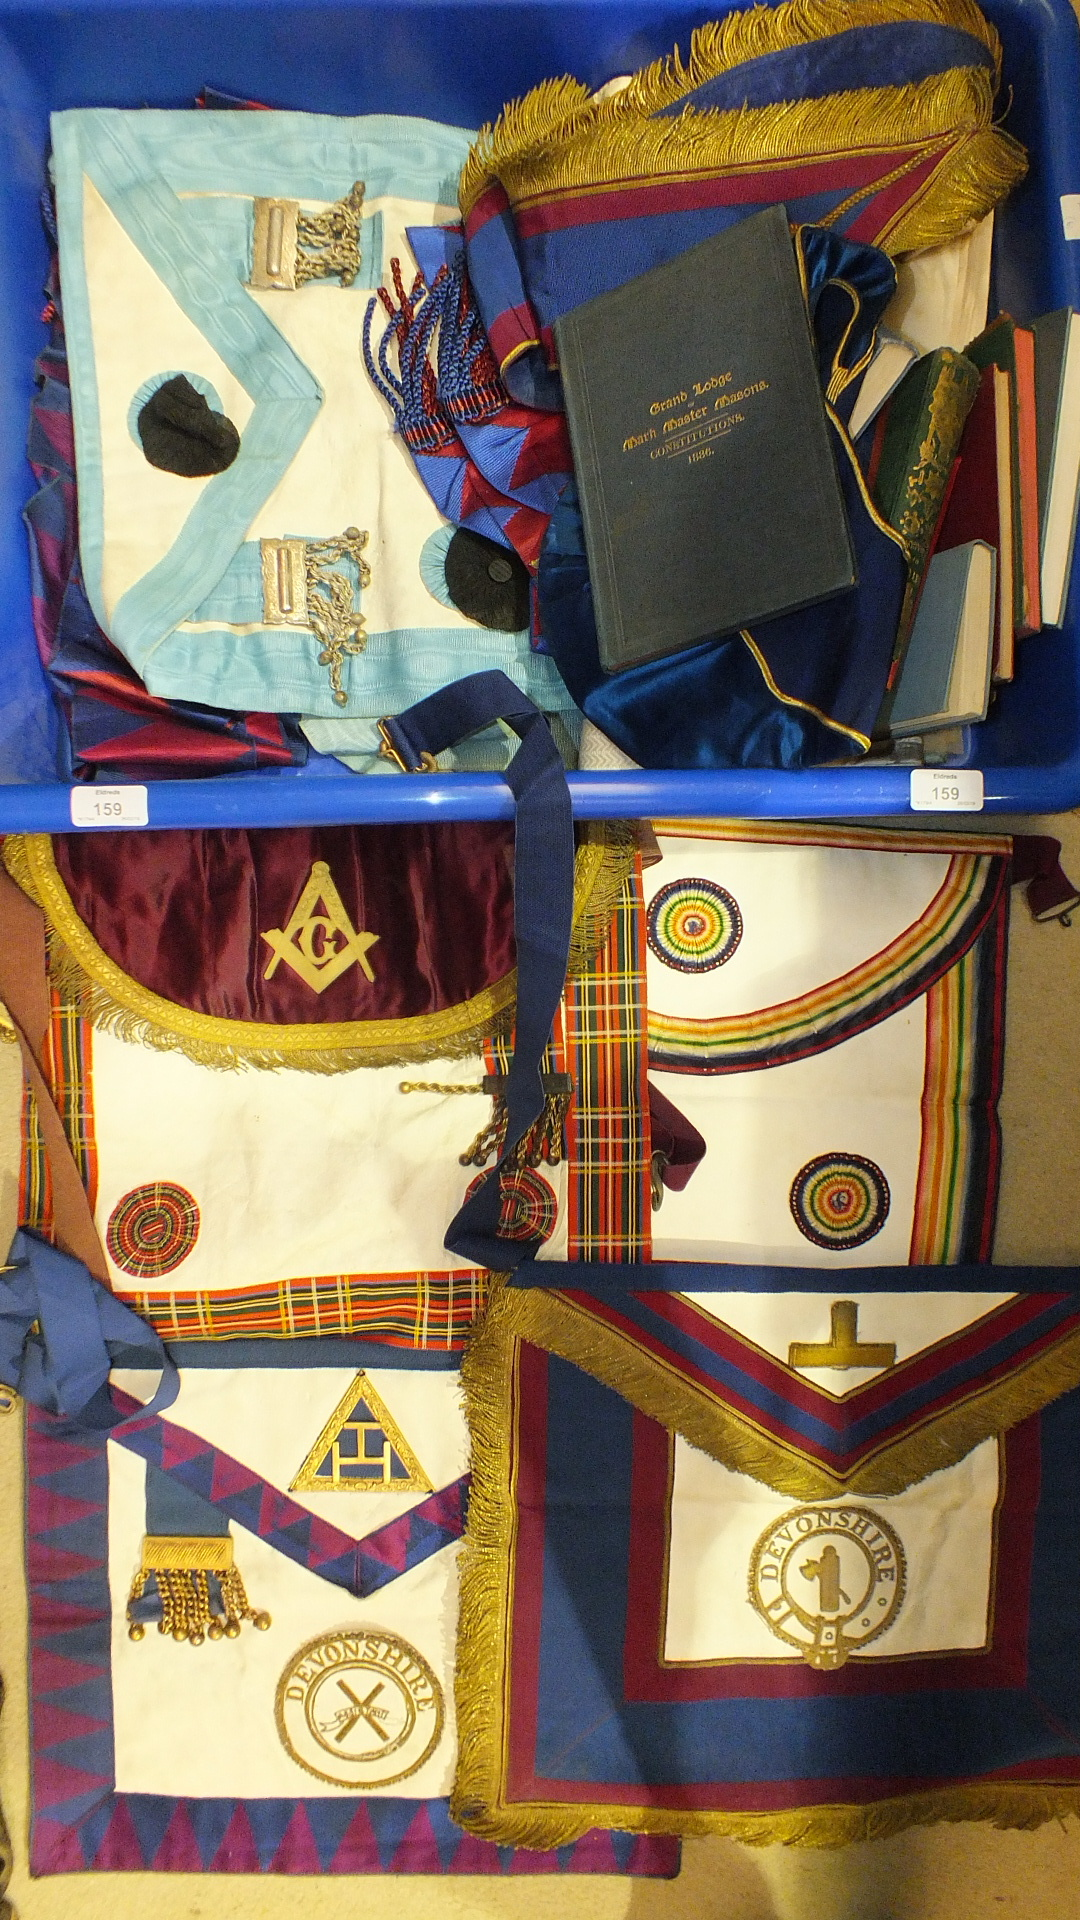 Lot 159 - A collection of aprons, collars and Masonic ritual and constitution books, (all in soiled